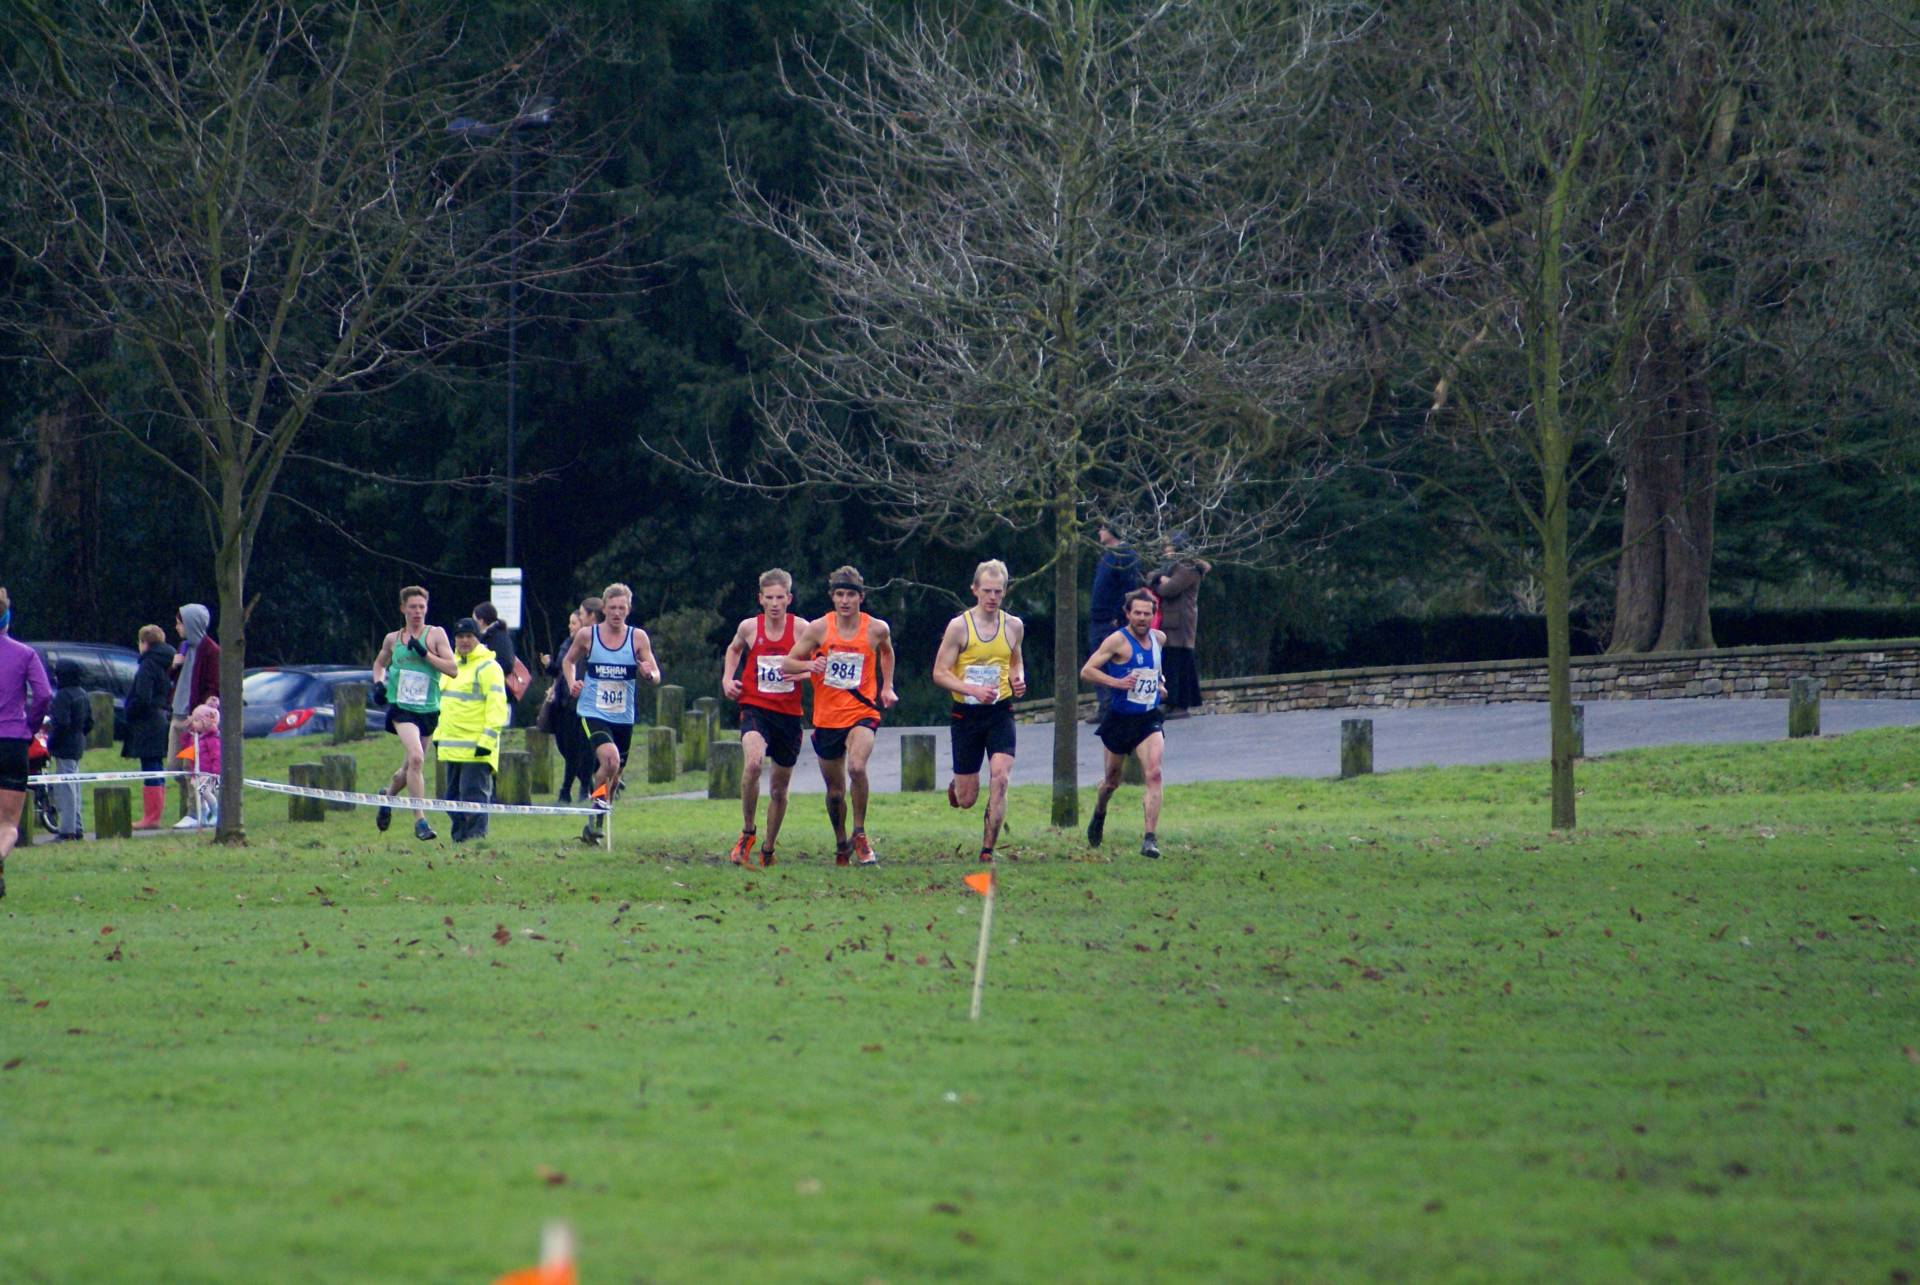 Mid Lancs XC at Burnley and more Results for the Harriers